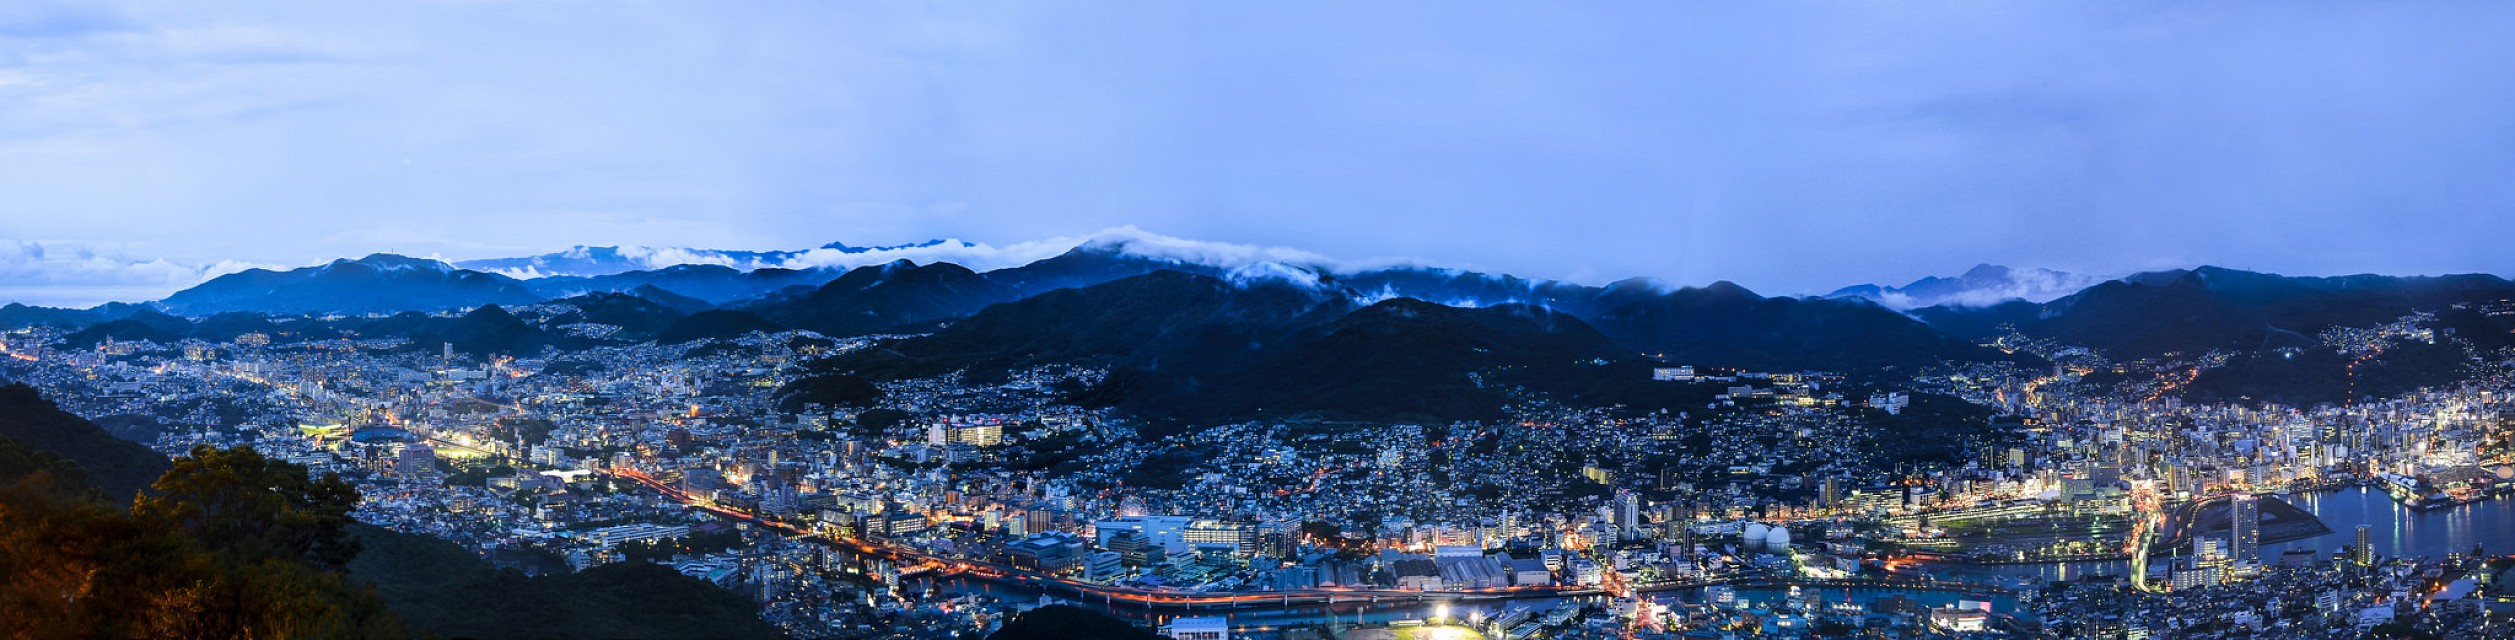 Panoramic View of Nagasaki City from Mount Inasa - Nagasaki